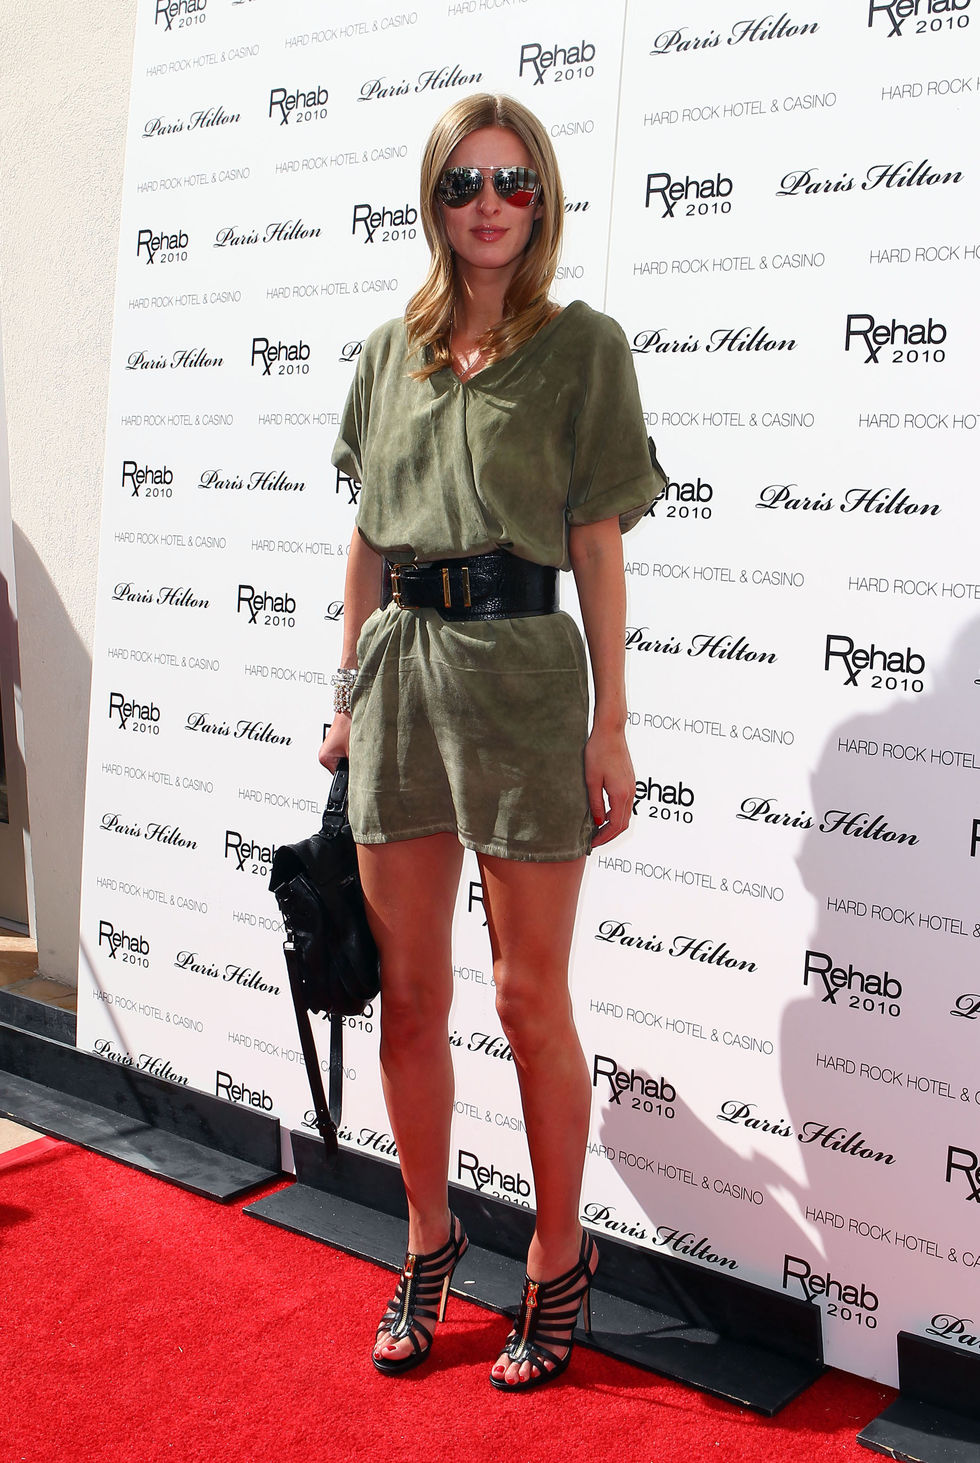 Nicky Hilton 2010 : nicky-hilton-leggy-candids-at-the-ultimate-daytime-pool-party-in-las-vegas-08